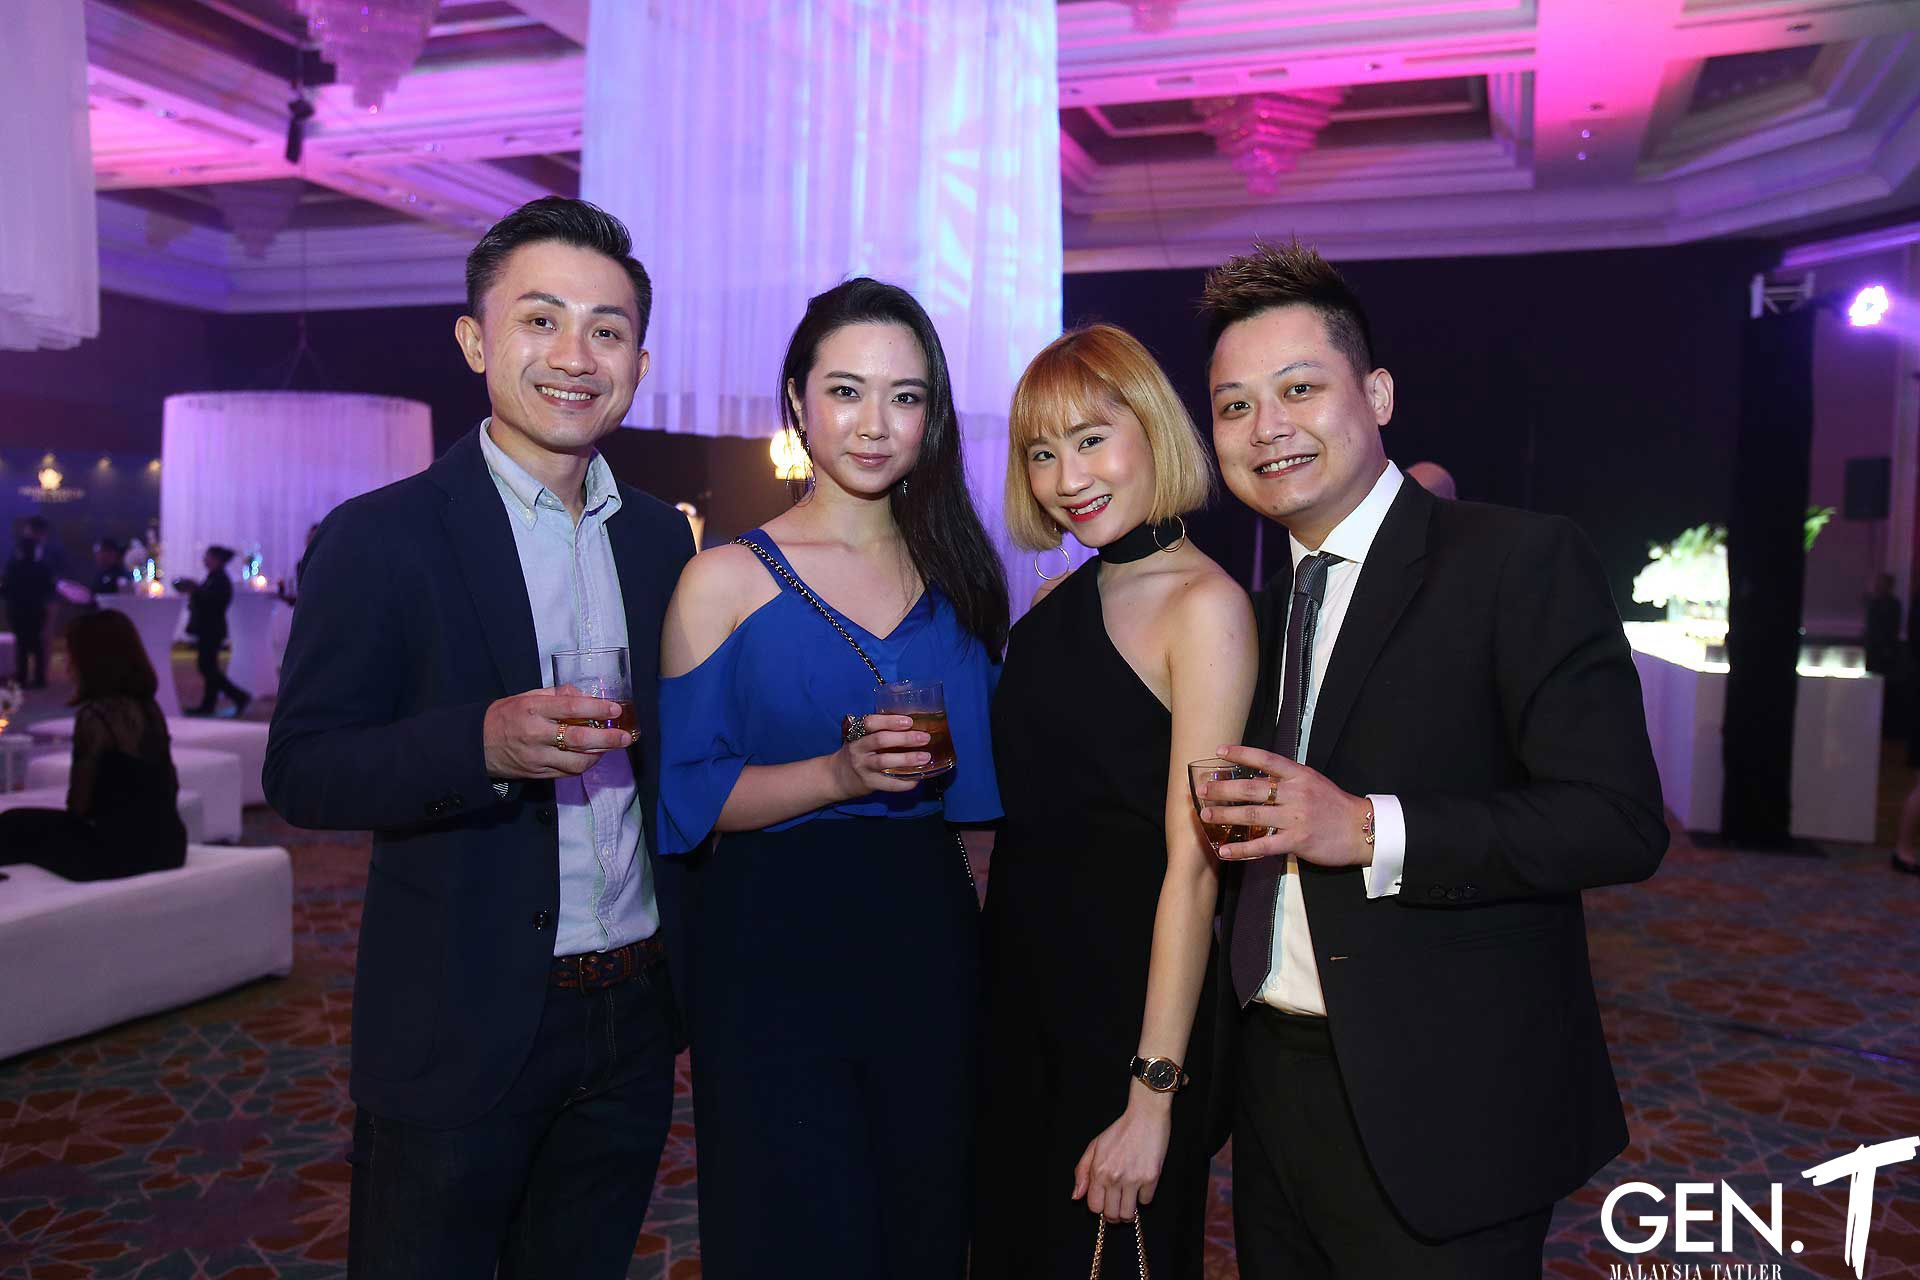 Tai Wee Yeng, Samantha Tan, Sarah Goh and Louis Lai